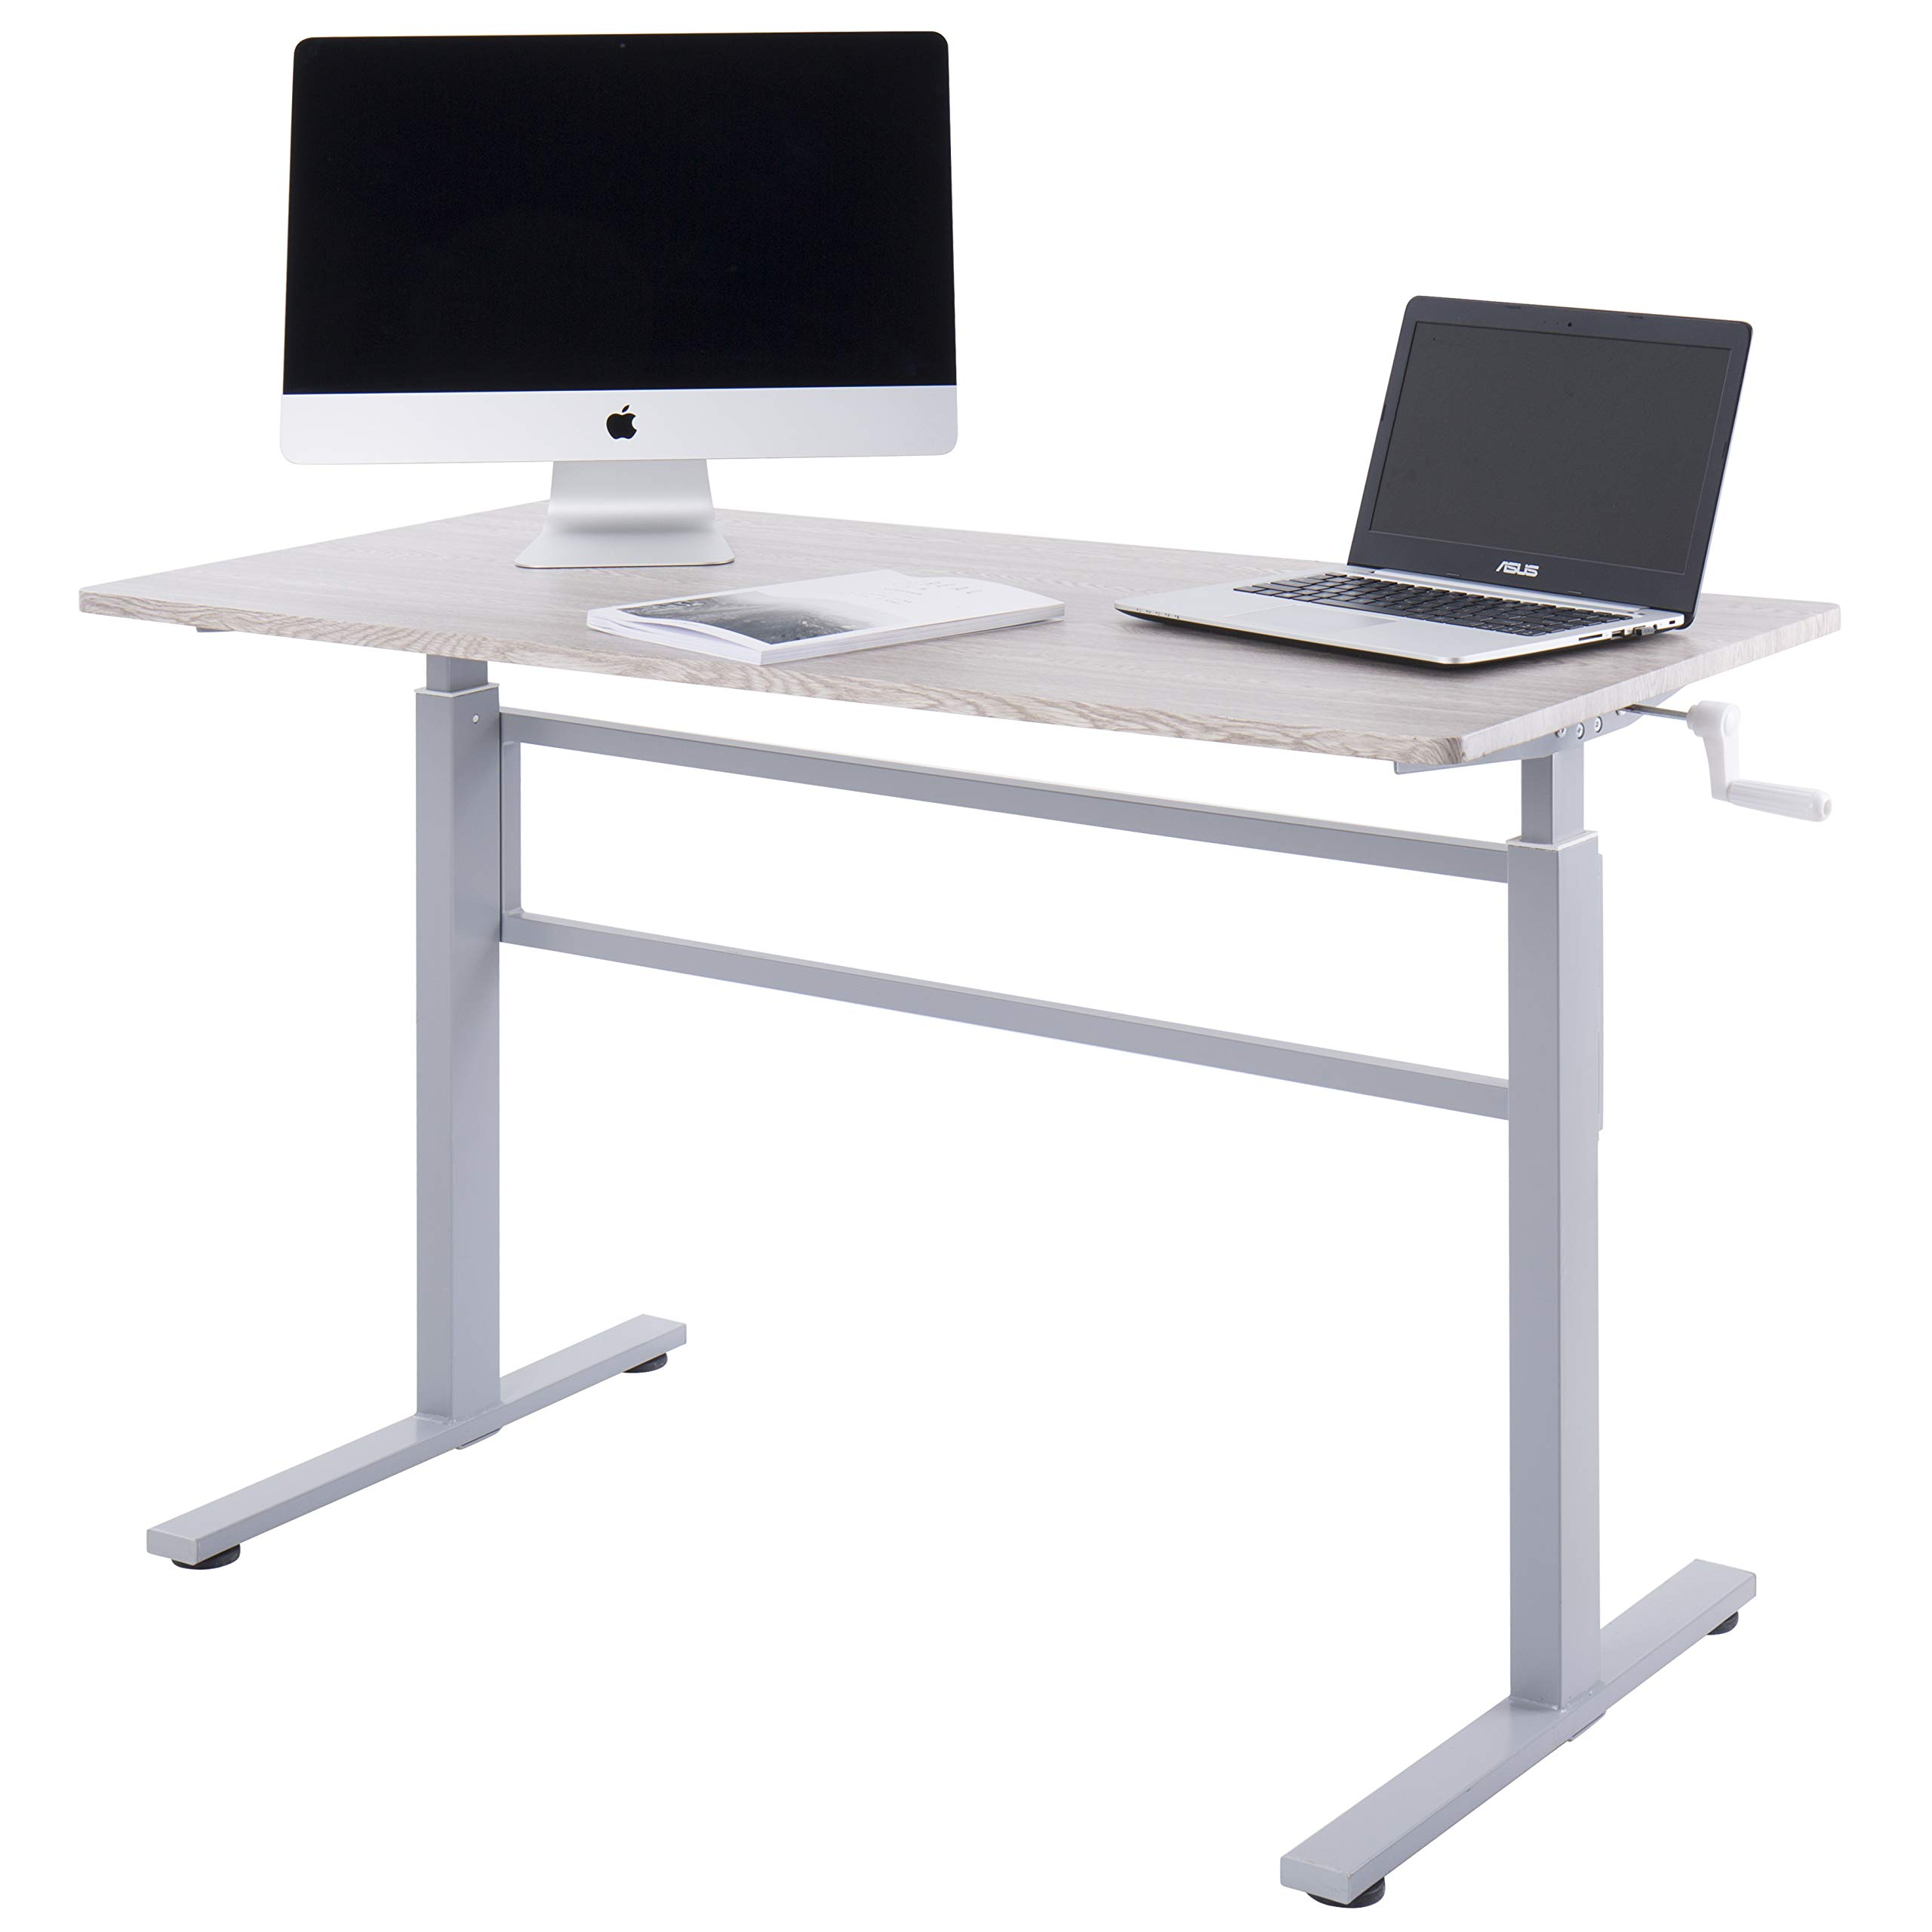 UNICOO - Crank Adjustable Height Standing Desk, Adjustable Sit to Stand up Desk,Home Office Computer Table, Portable Writing Study Table (Grey Oak Top/Gray Legs) by UNICOO